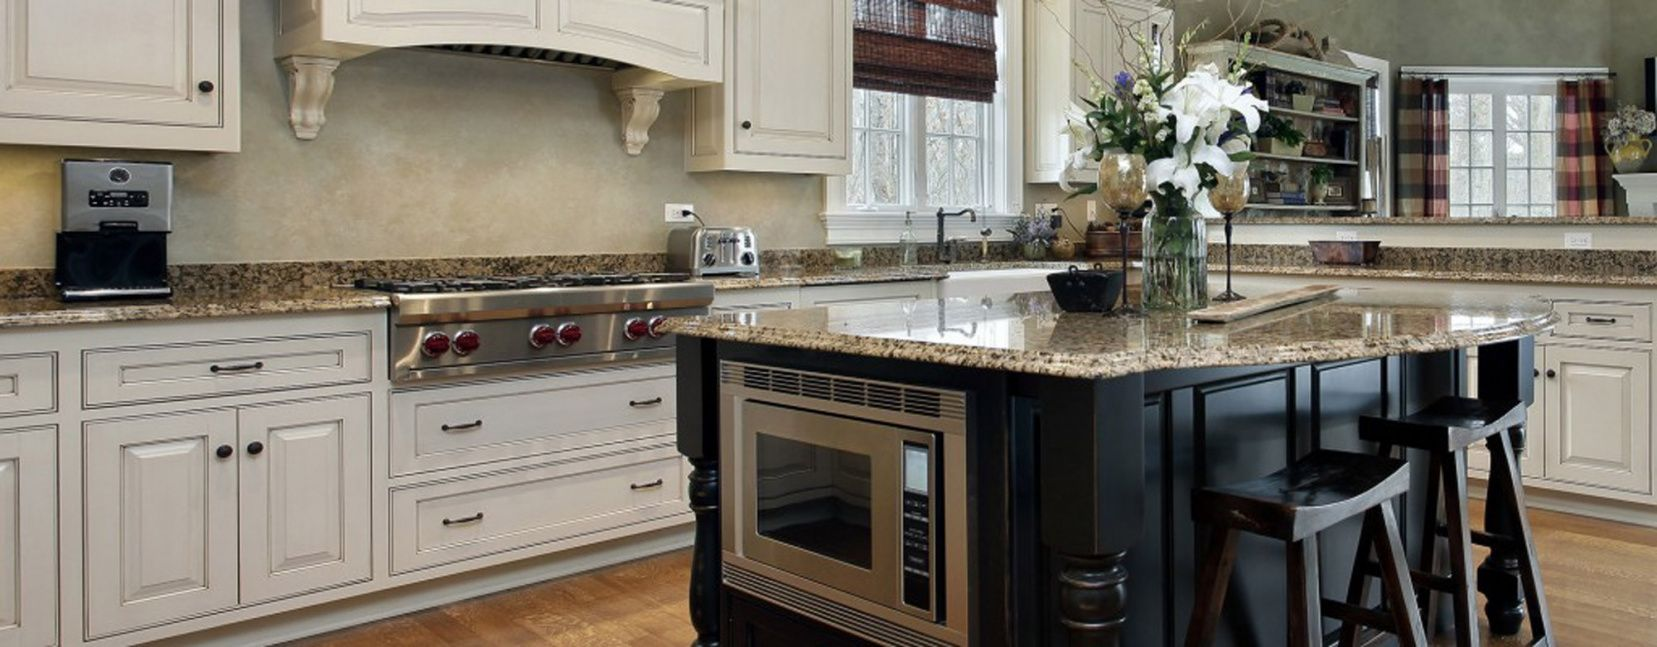 50+ Granite Countertops Tampa Fl   Remodeling Ideas For Kitchens Check More  At ...